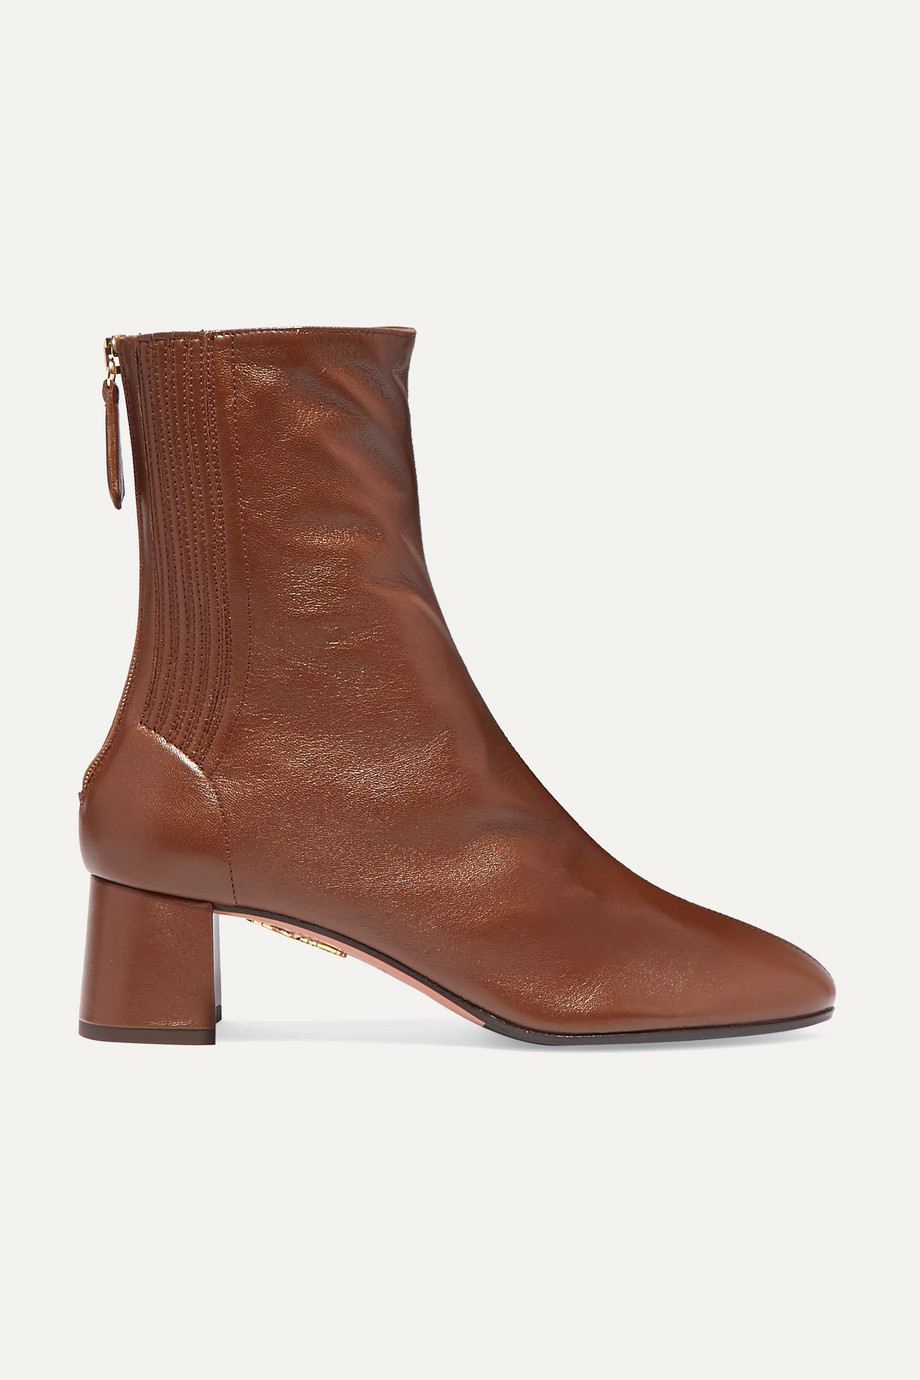 AQUAZZURA Saint Honoré 50 leather ankle boots